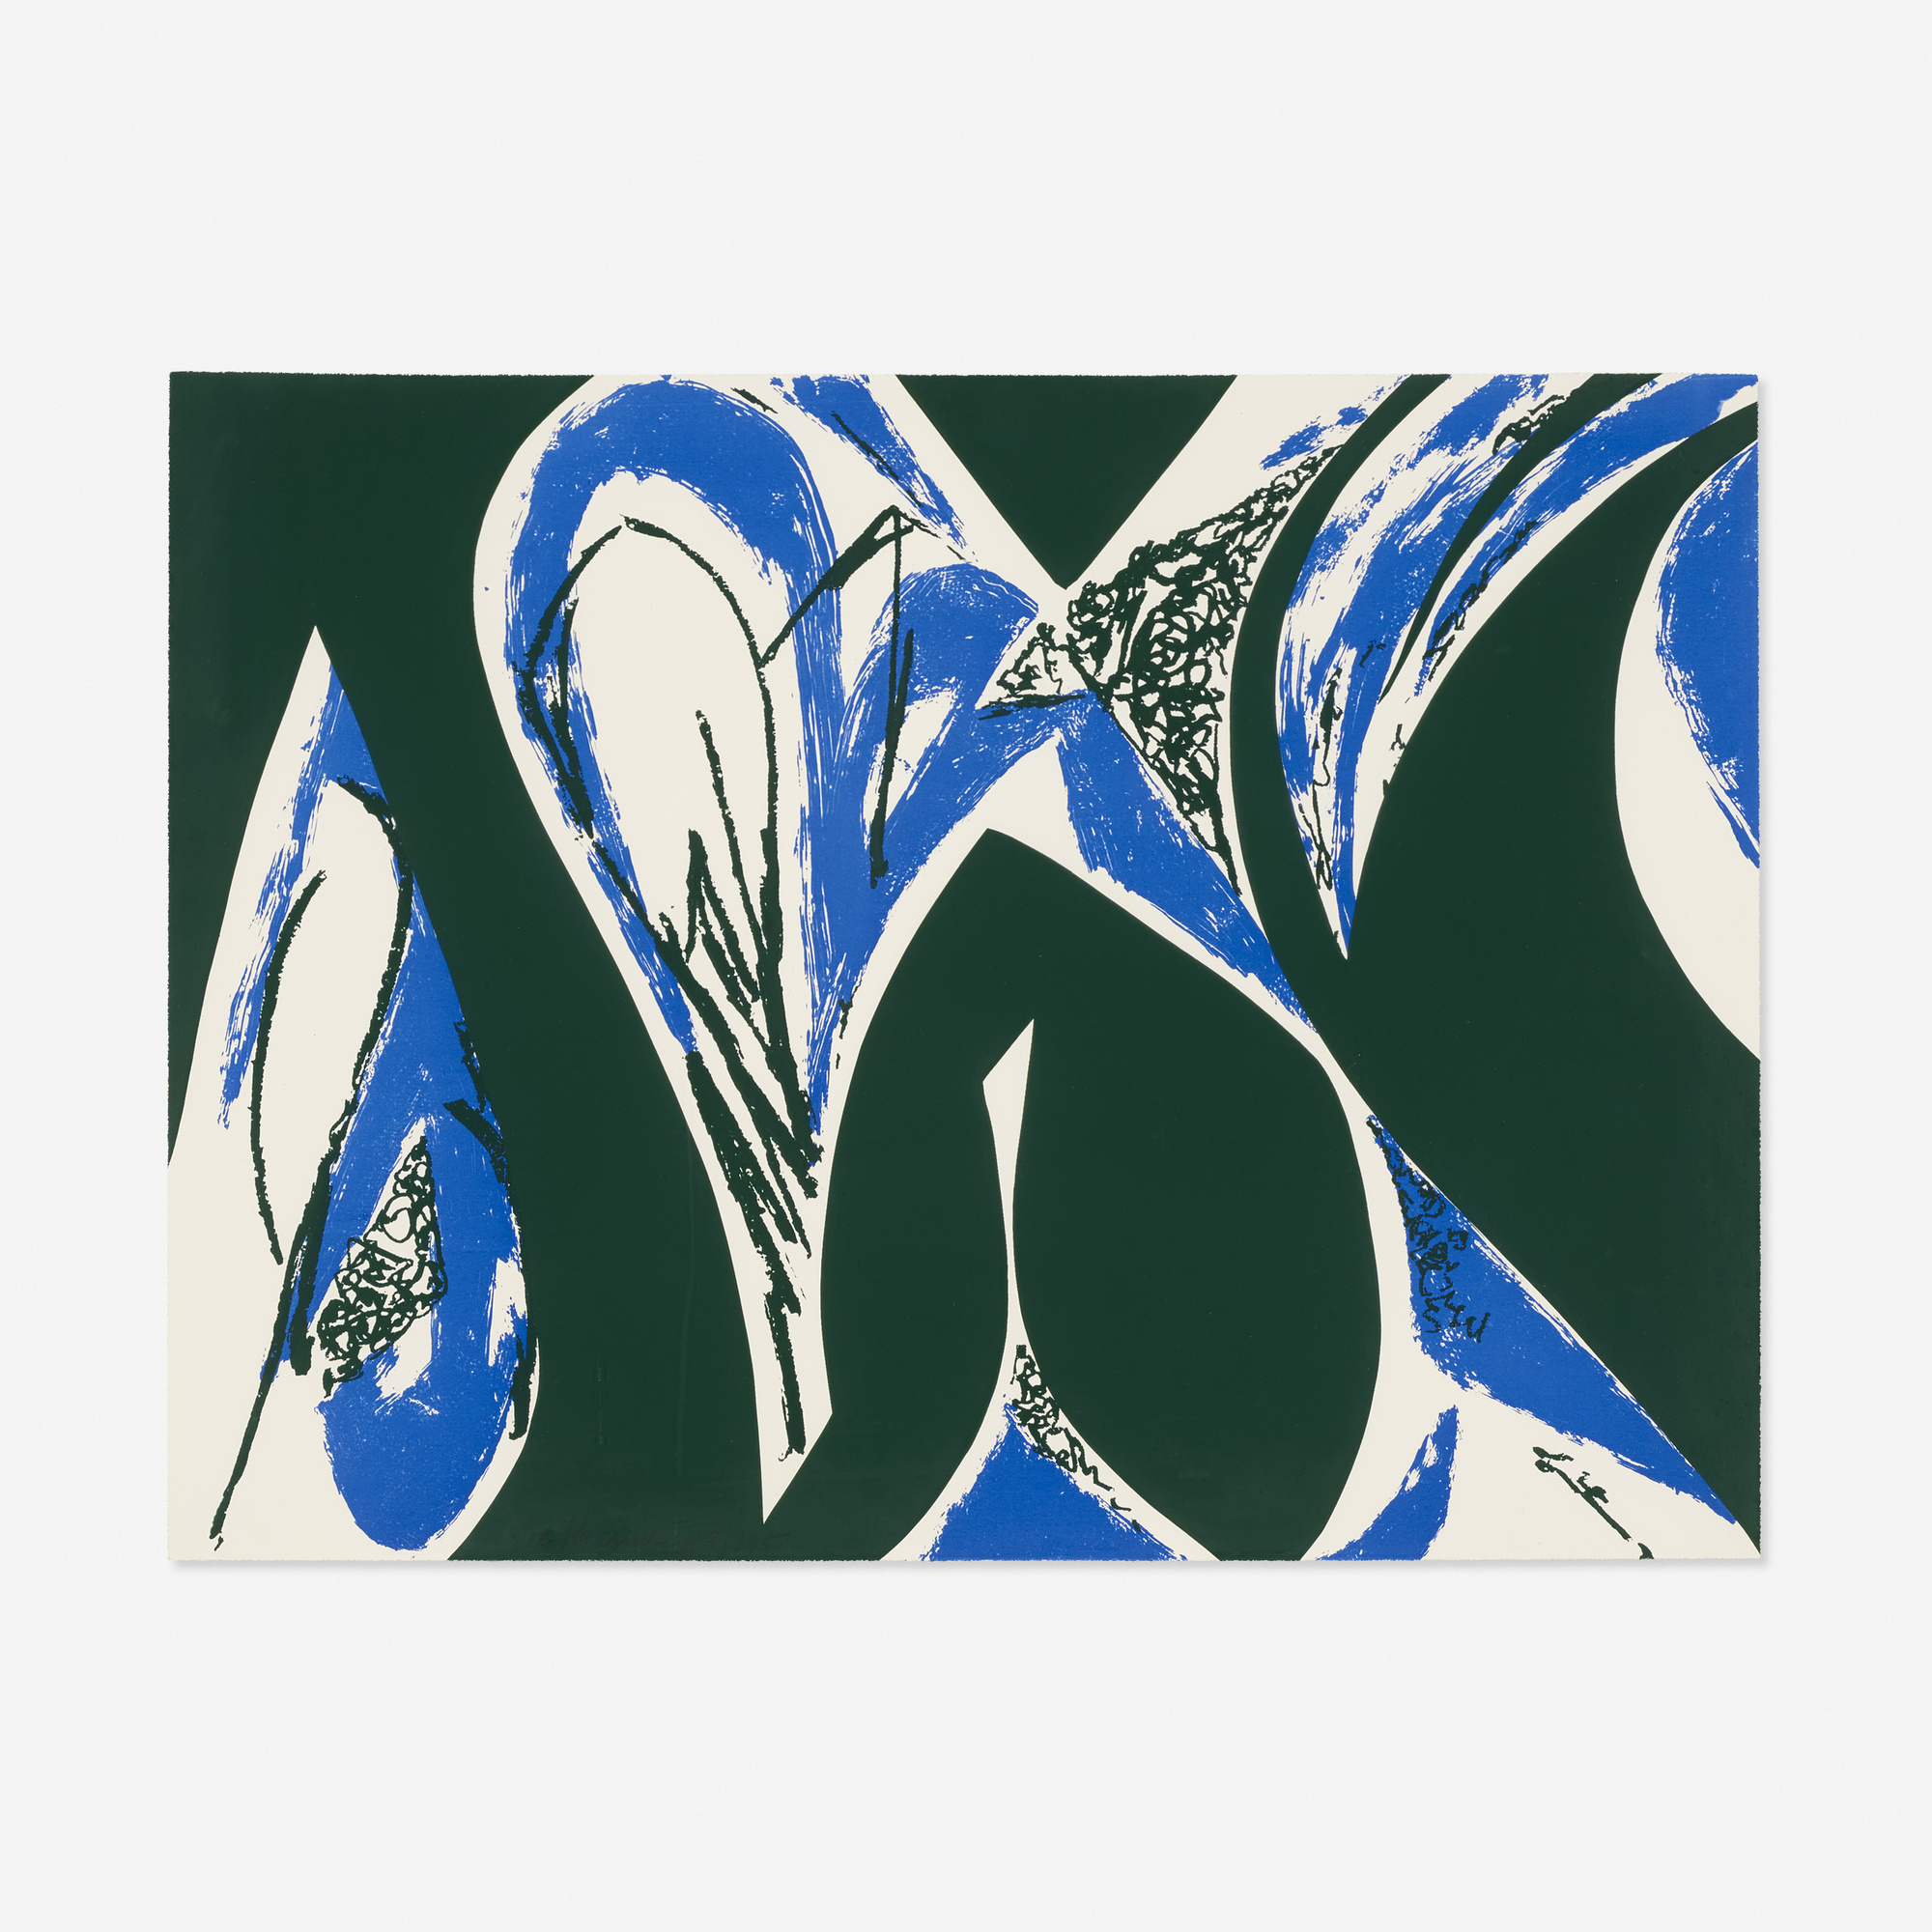 122: Lee Krasner / Free Space (Blue) (1 of 1)